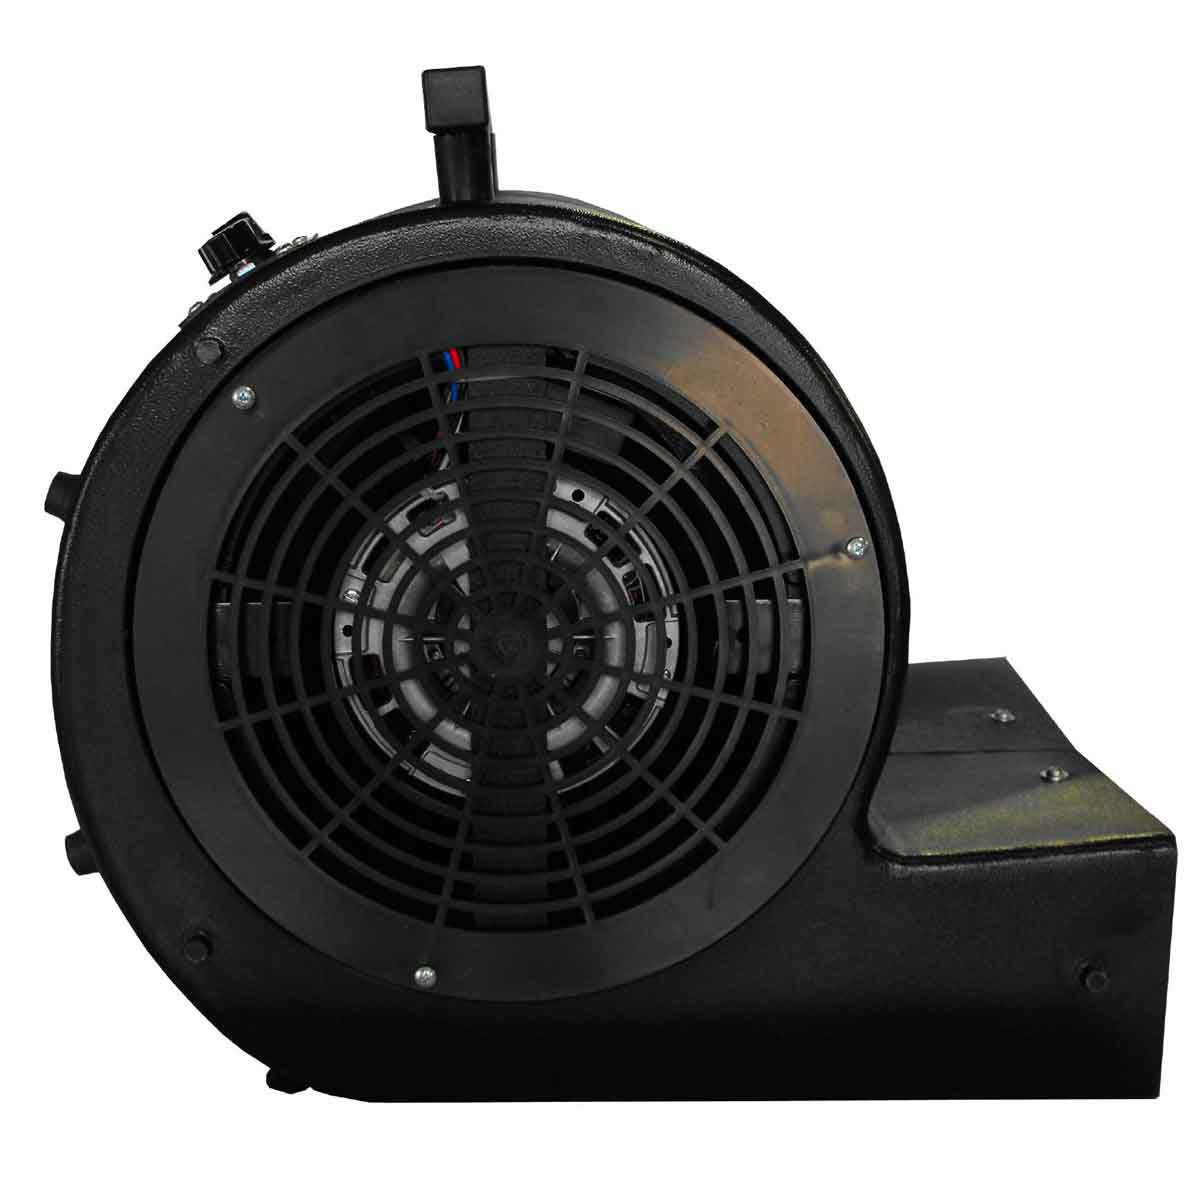 BH001-BLACK Hawk Industrial Black Air Blower